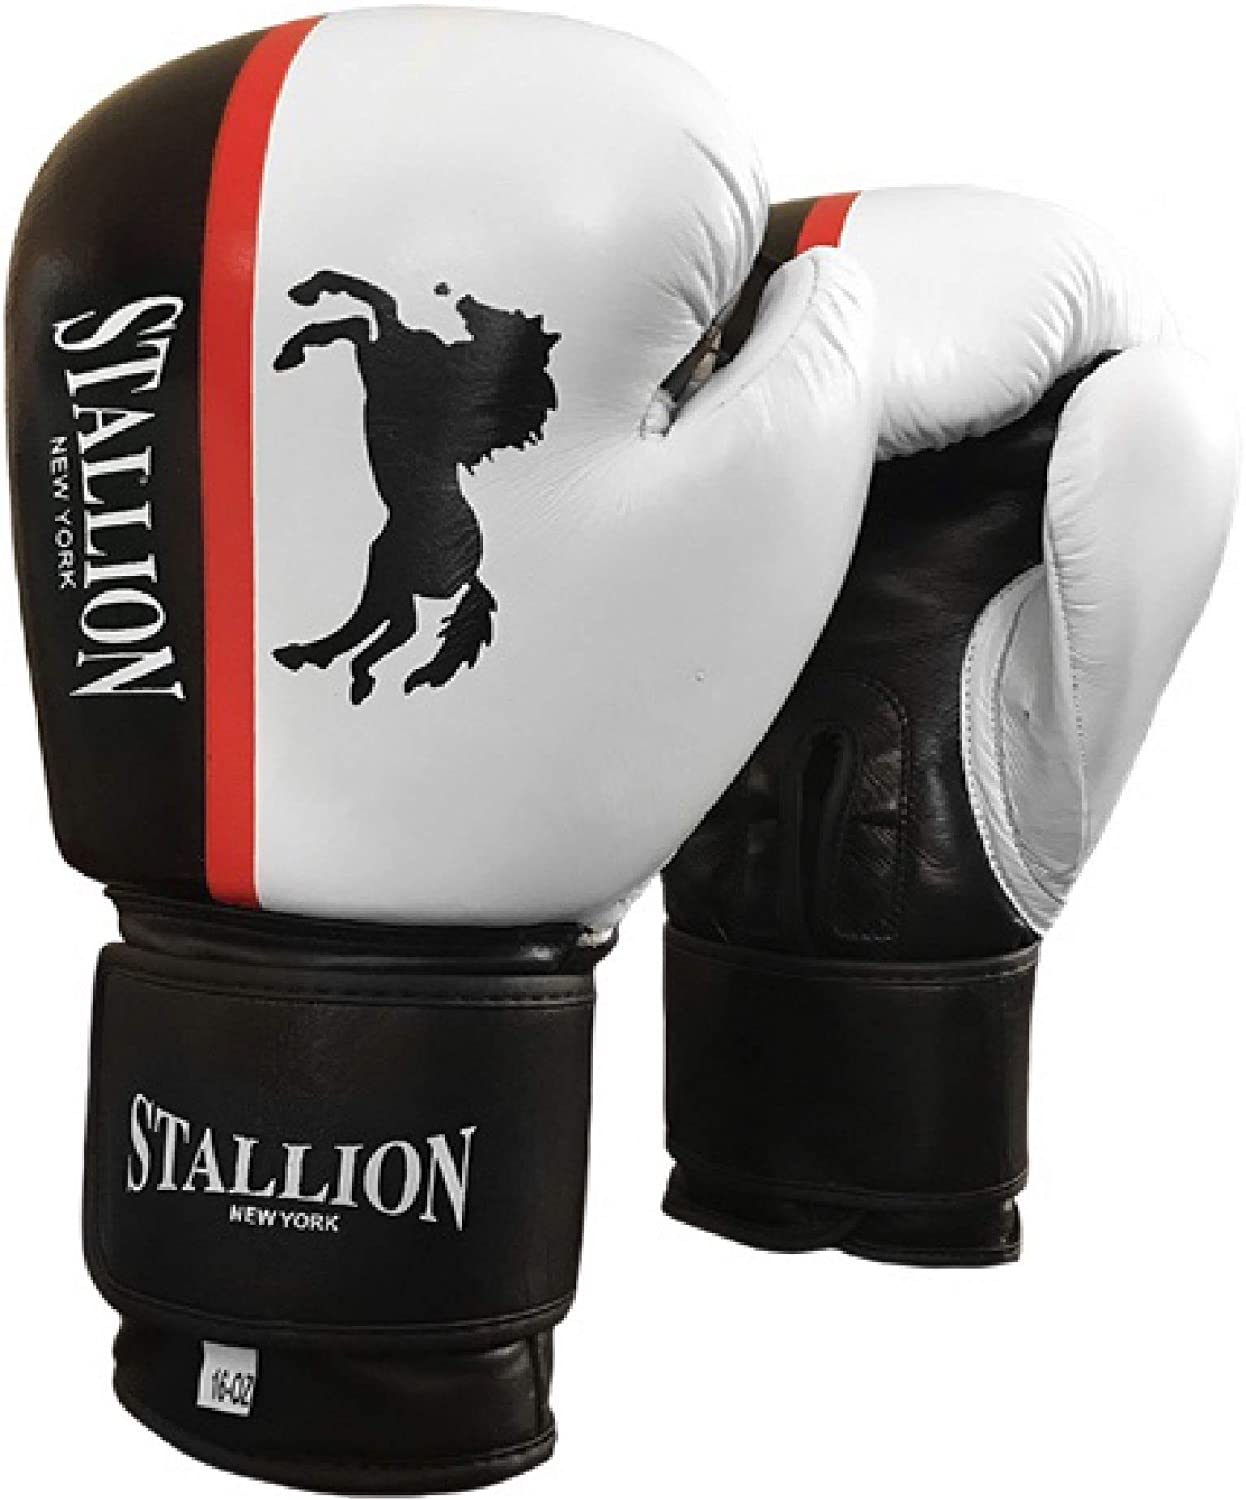 STALLION NEW YORK All Pro Boxing Gloves - Classic Stealth Bomber Series - Genuine Leather - Superior Velcro Gloves for Bag/Sparring - State-of-The-Art Quality